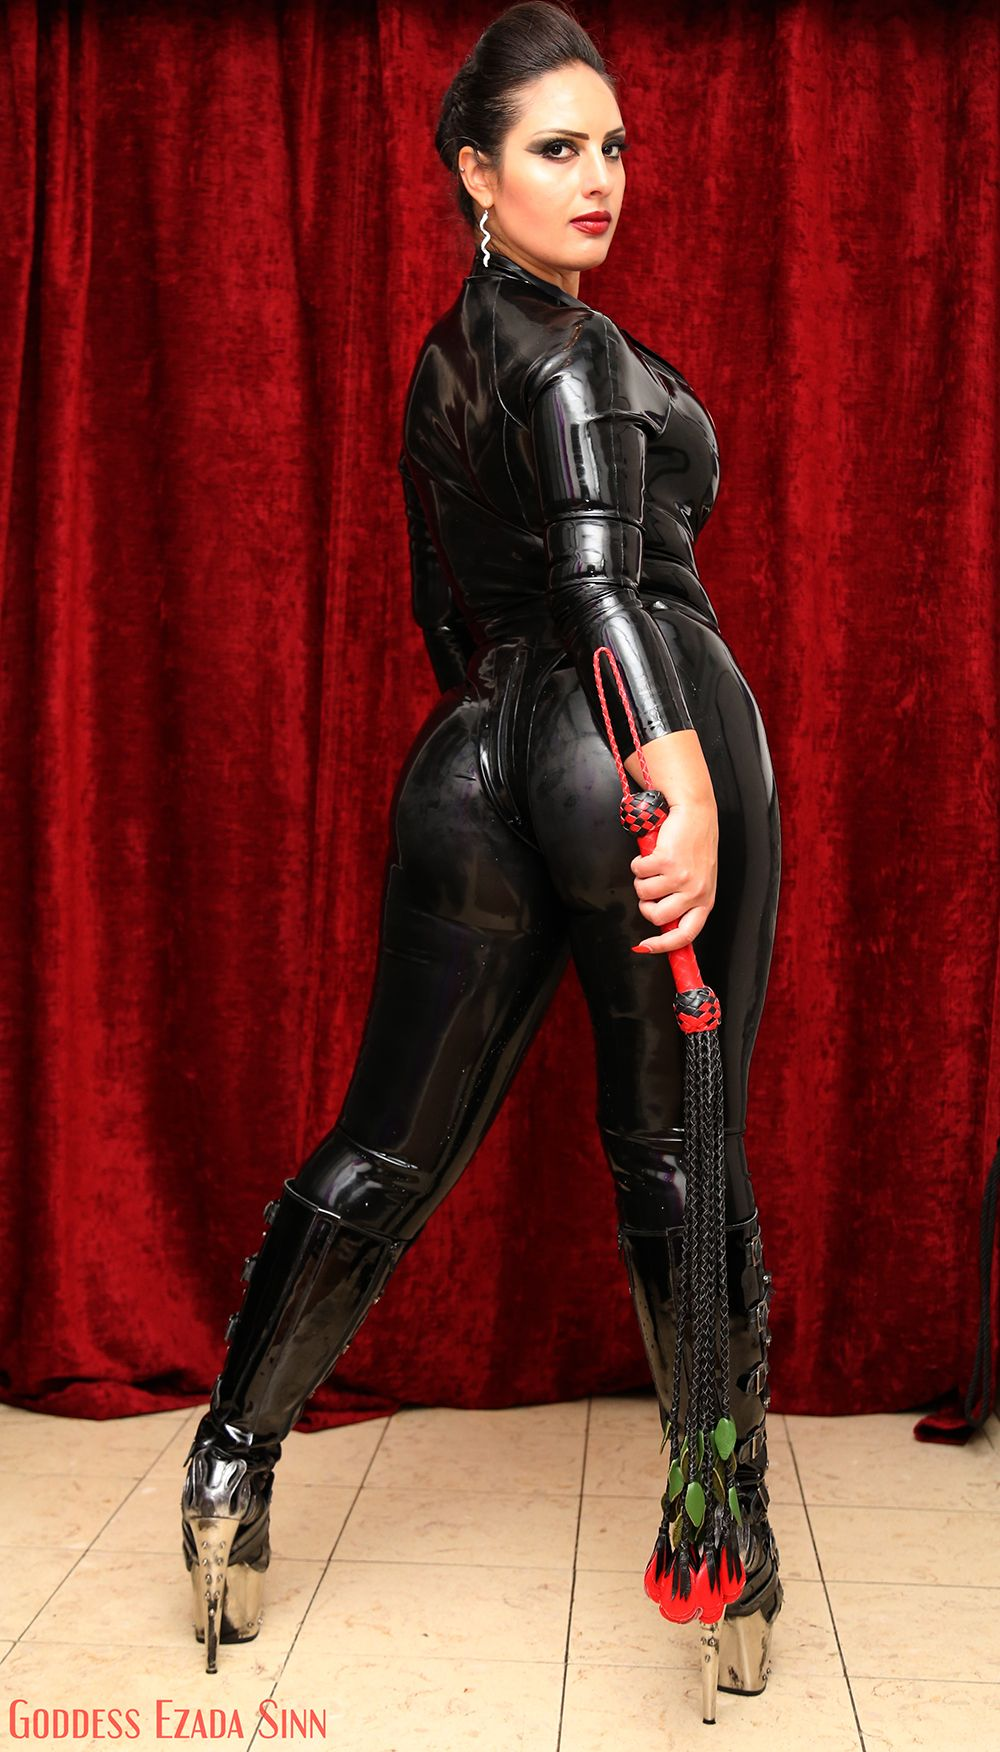 goddess ezada sinn female supremacy pinterest